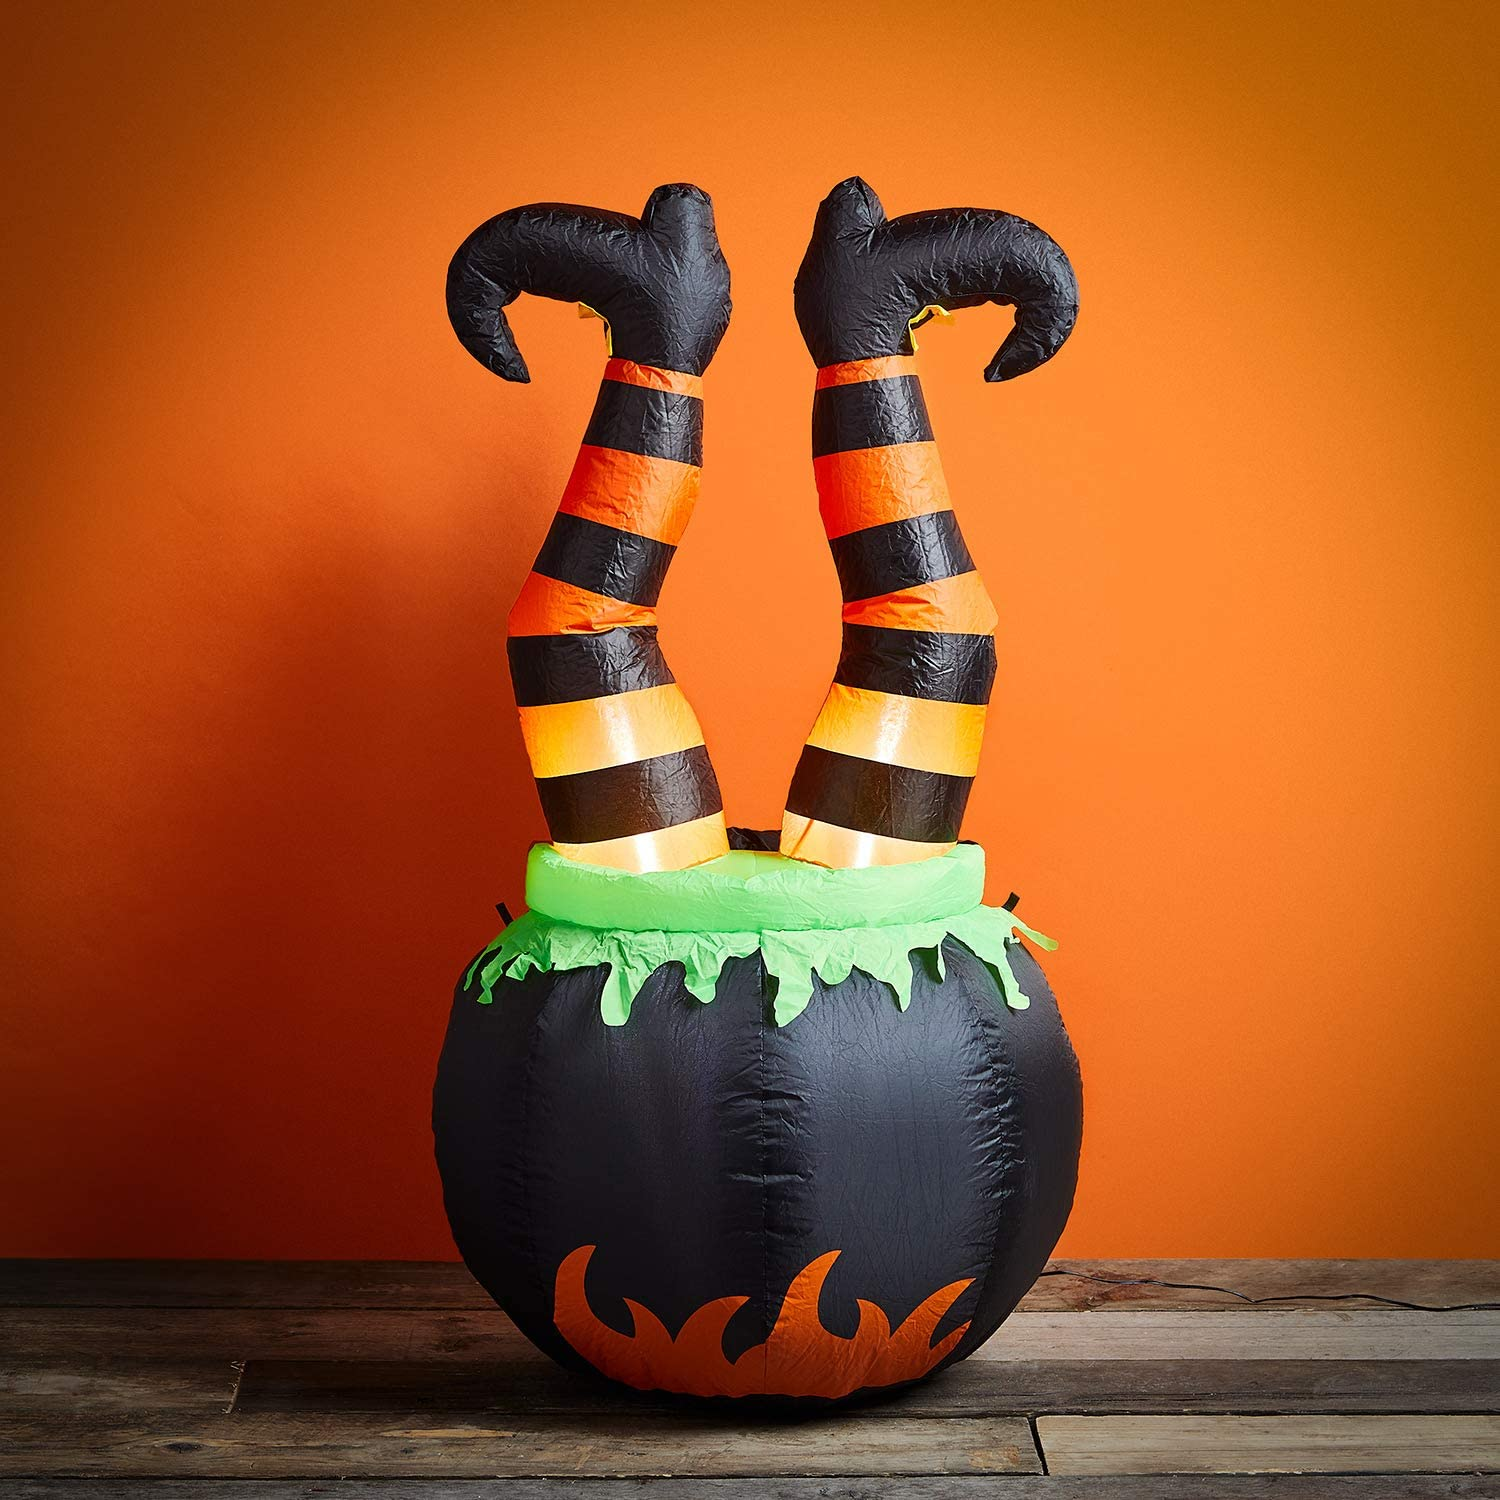 Amazon Com Lights4fun Inc 4ft Inflatable Witches Legs In Cauldron Halloween Decoration With Built In Led Lights Garden Outdoor